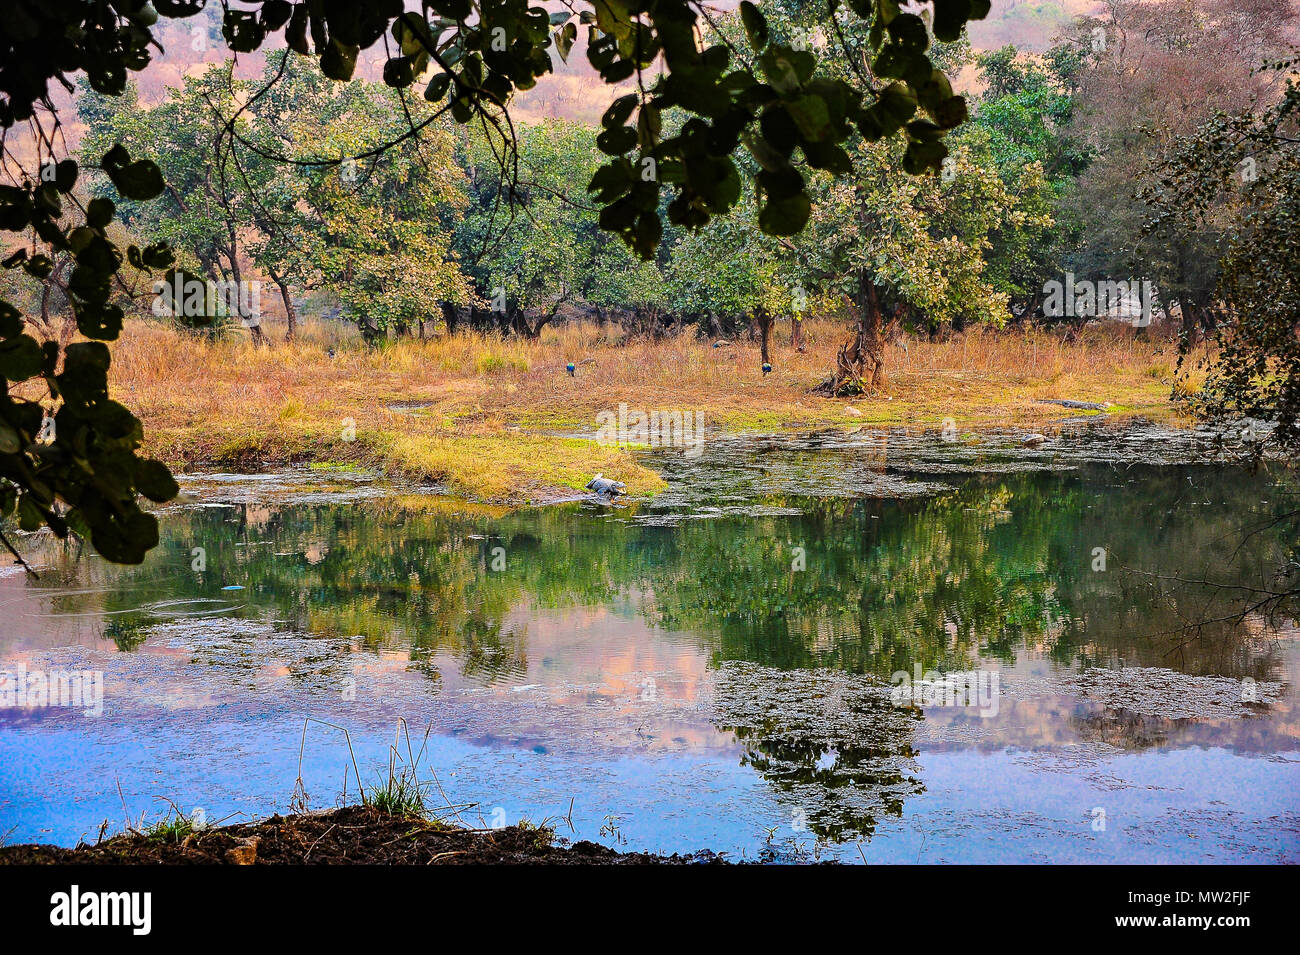 Beautiful wetlands landscape in Ranthambore National Park, India. Jungle, colourful trees reflected in lake, with crocodile at water's edge - Stock Image